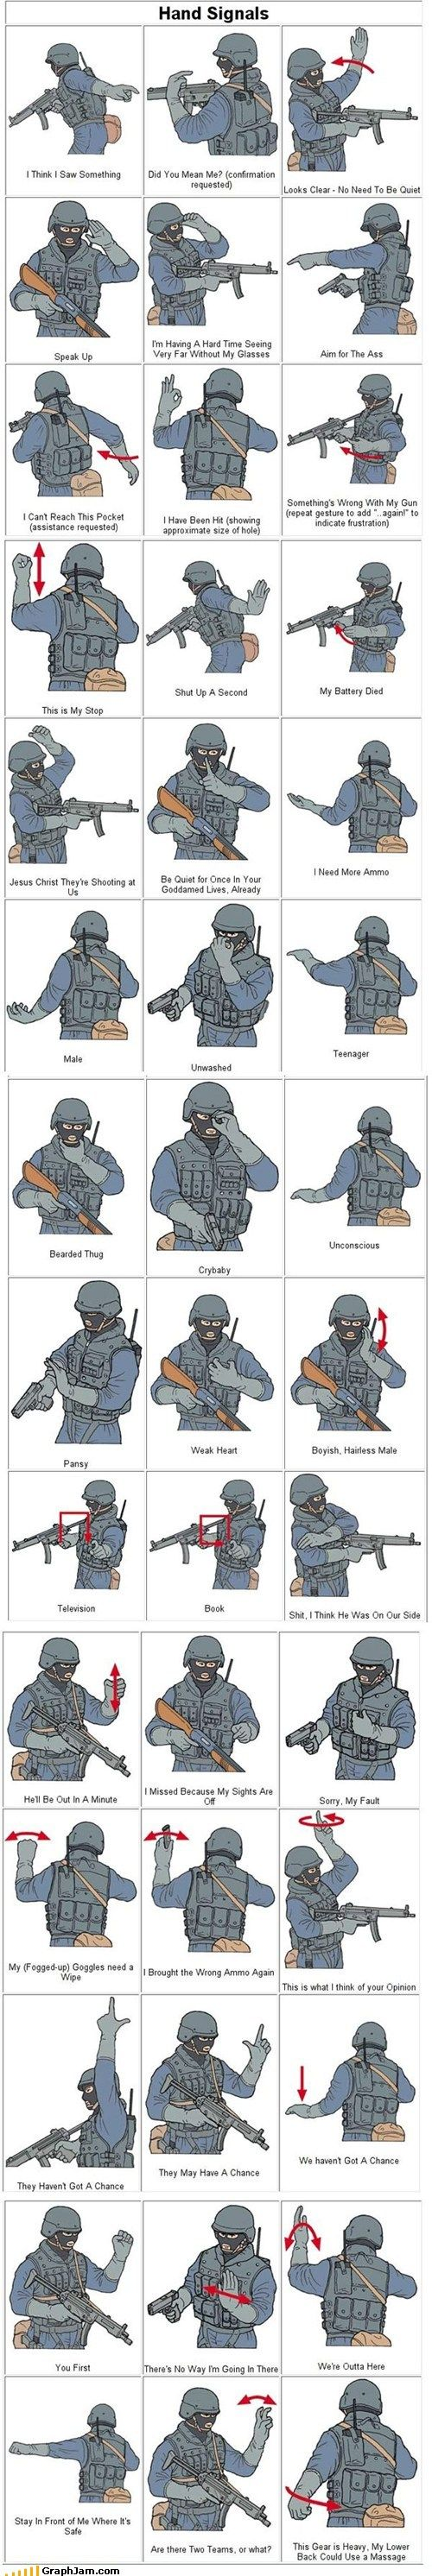 SWAT hand signals. Knowing these will come in handy when Lara finds some of her friends/rescues Sam and they need to find a way to communicate an escape strategy without alerting the scavengers to their location.